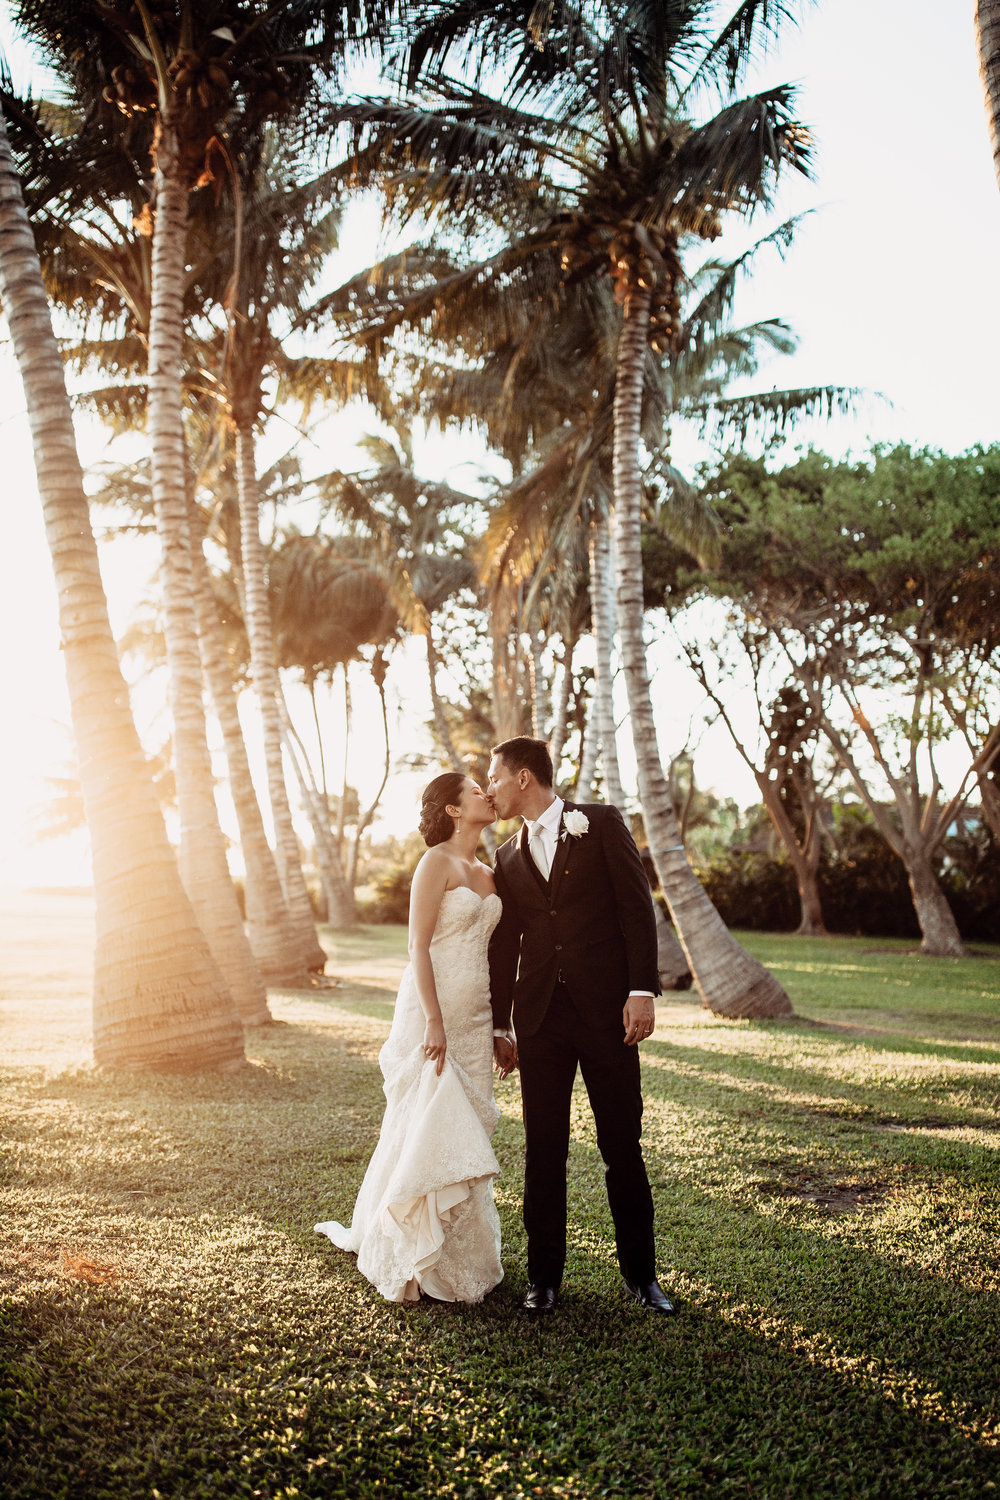 Olowalu Plantation House Wedding | Maui, Hawaii | Maya & Gen